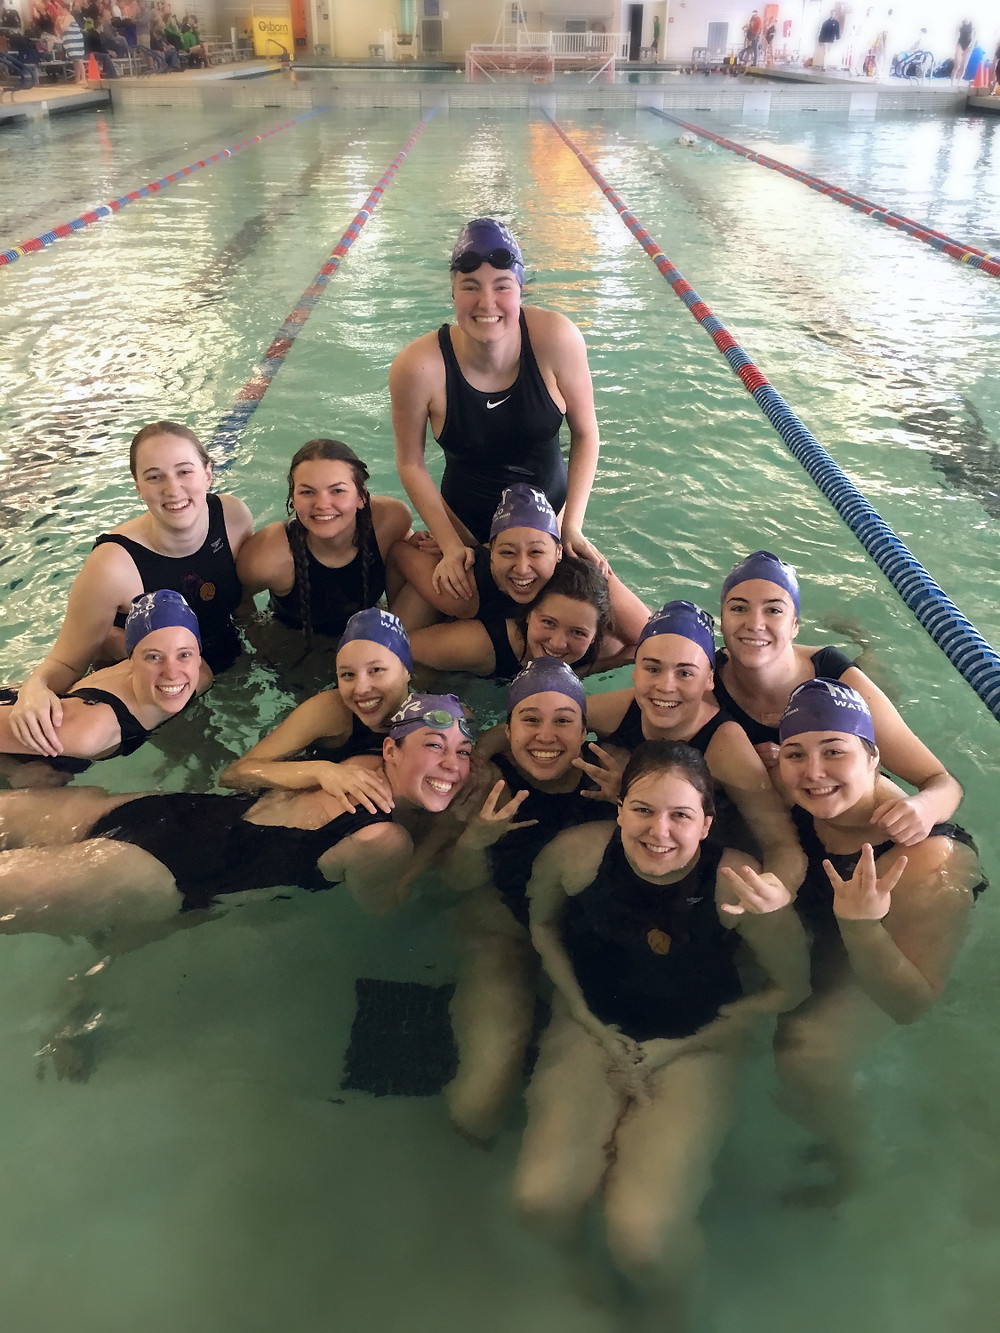 UW Women's Water Polo - Corvallis, OR 2016